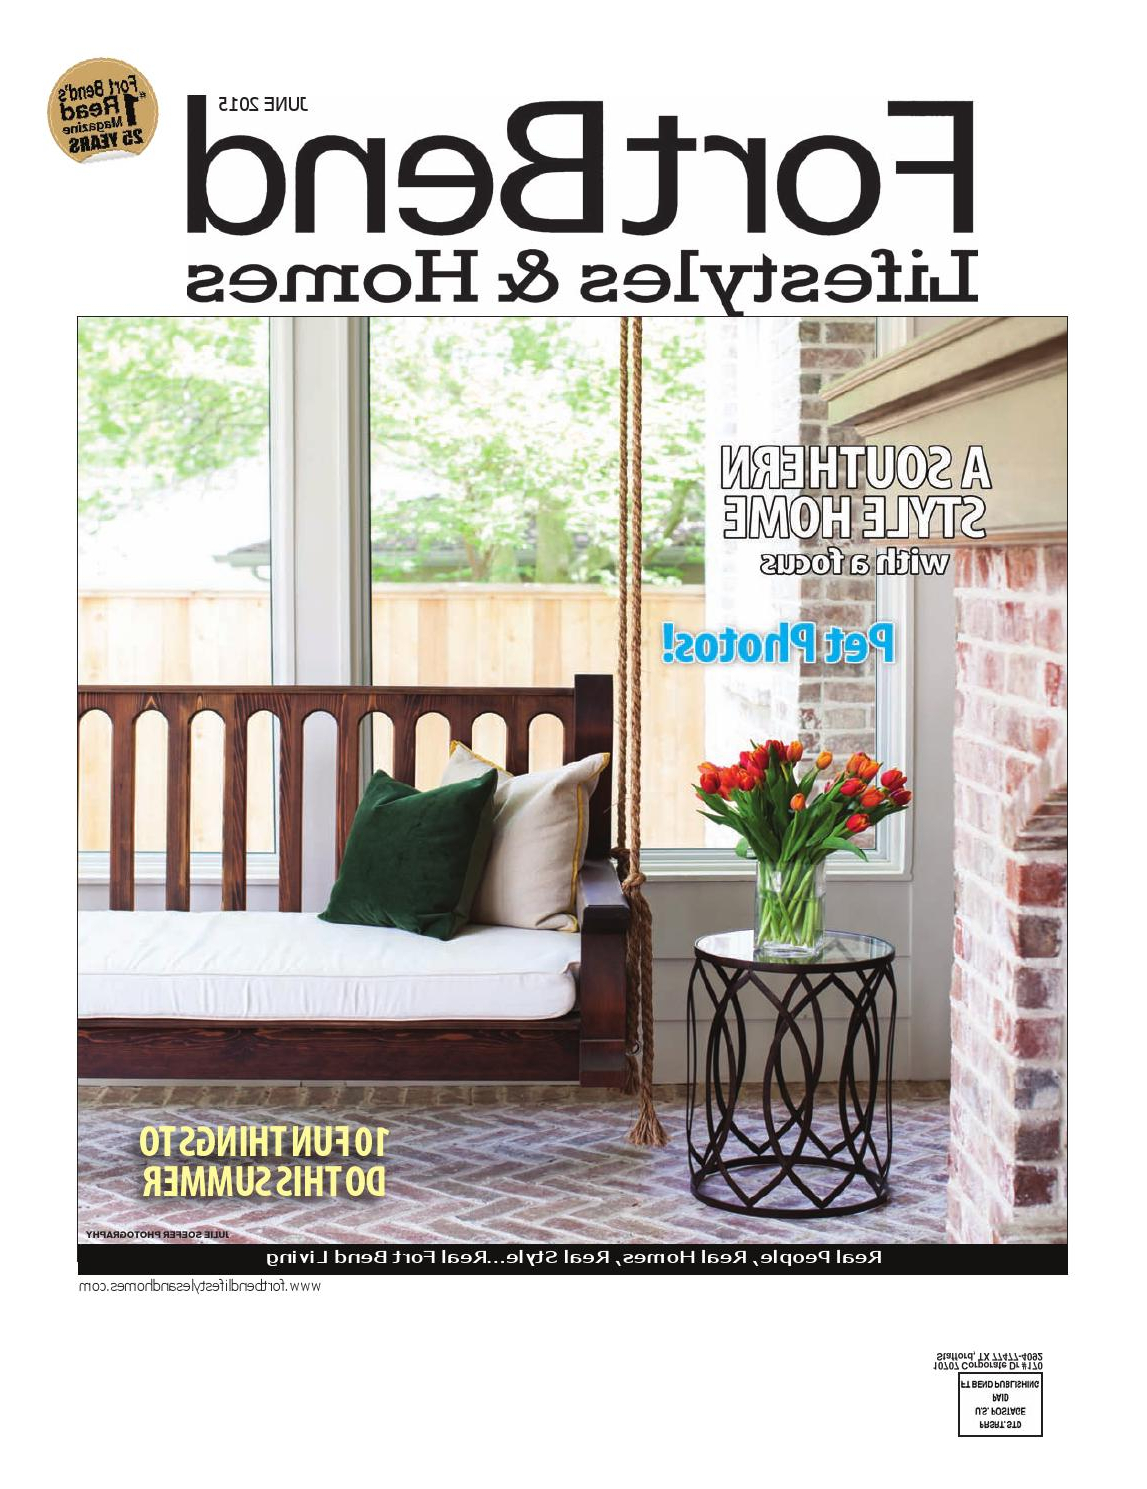 Well Known Marcus Oyster 6 Piece Sectionals With Power Headrest And Usb In Fort Bend Lifestyles & Homes June 2015Lifestyles & Homes (View 17 of 20)